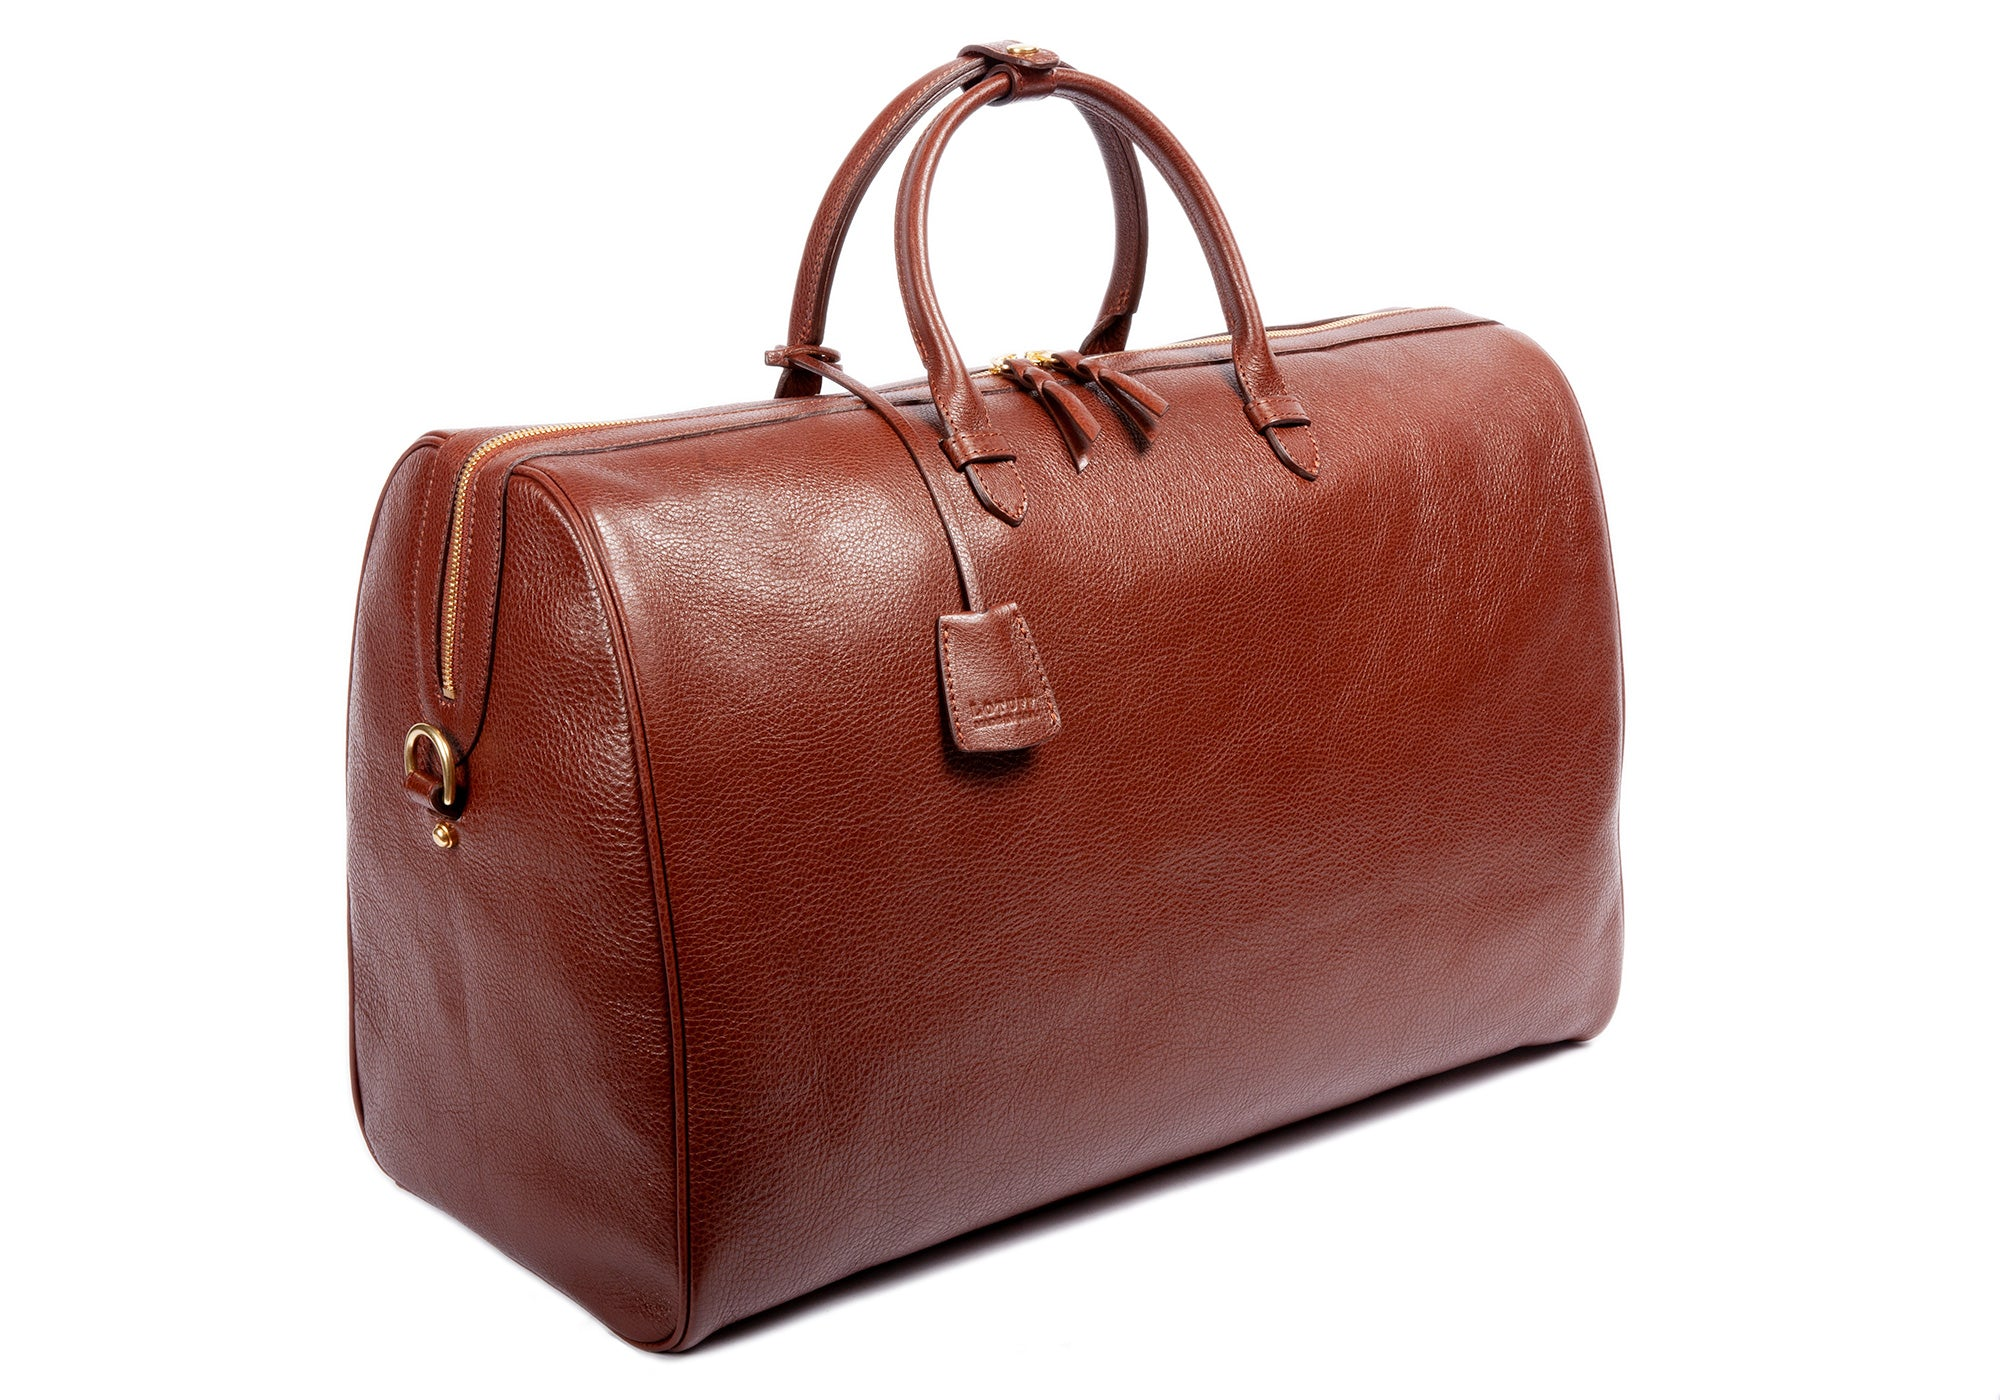 No. 12 Weekender Bag Chestnut